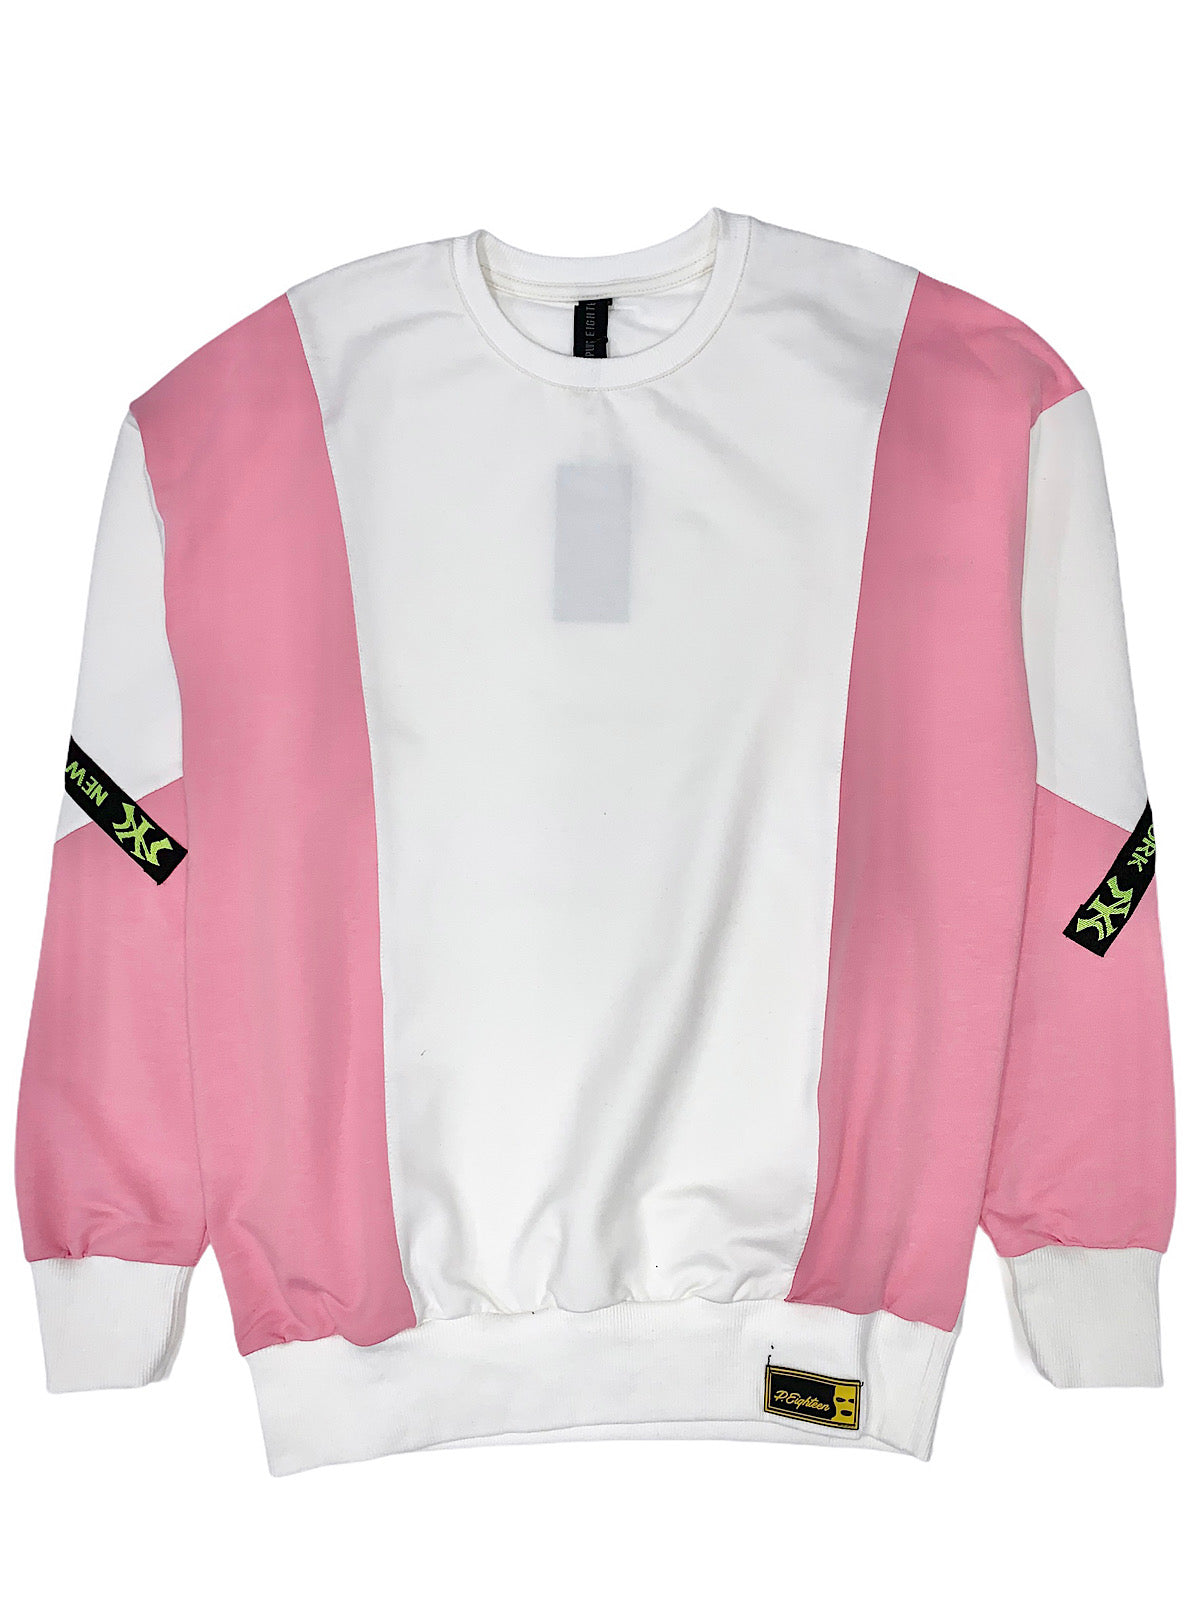 Buyer's Choice Sweatshirt - New York - White And Pink - ST-6509